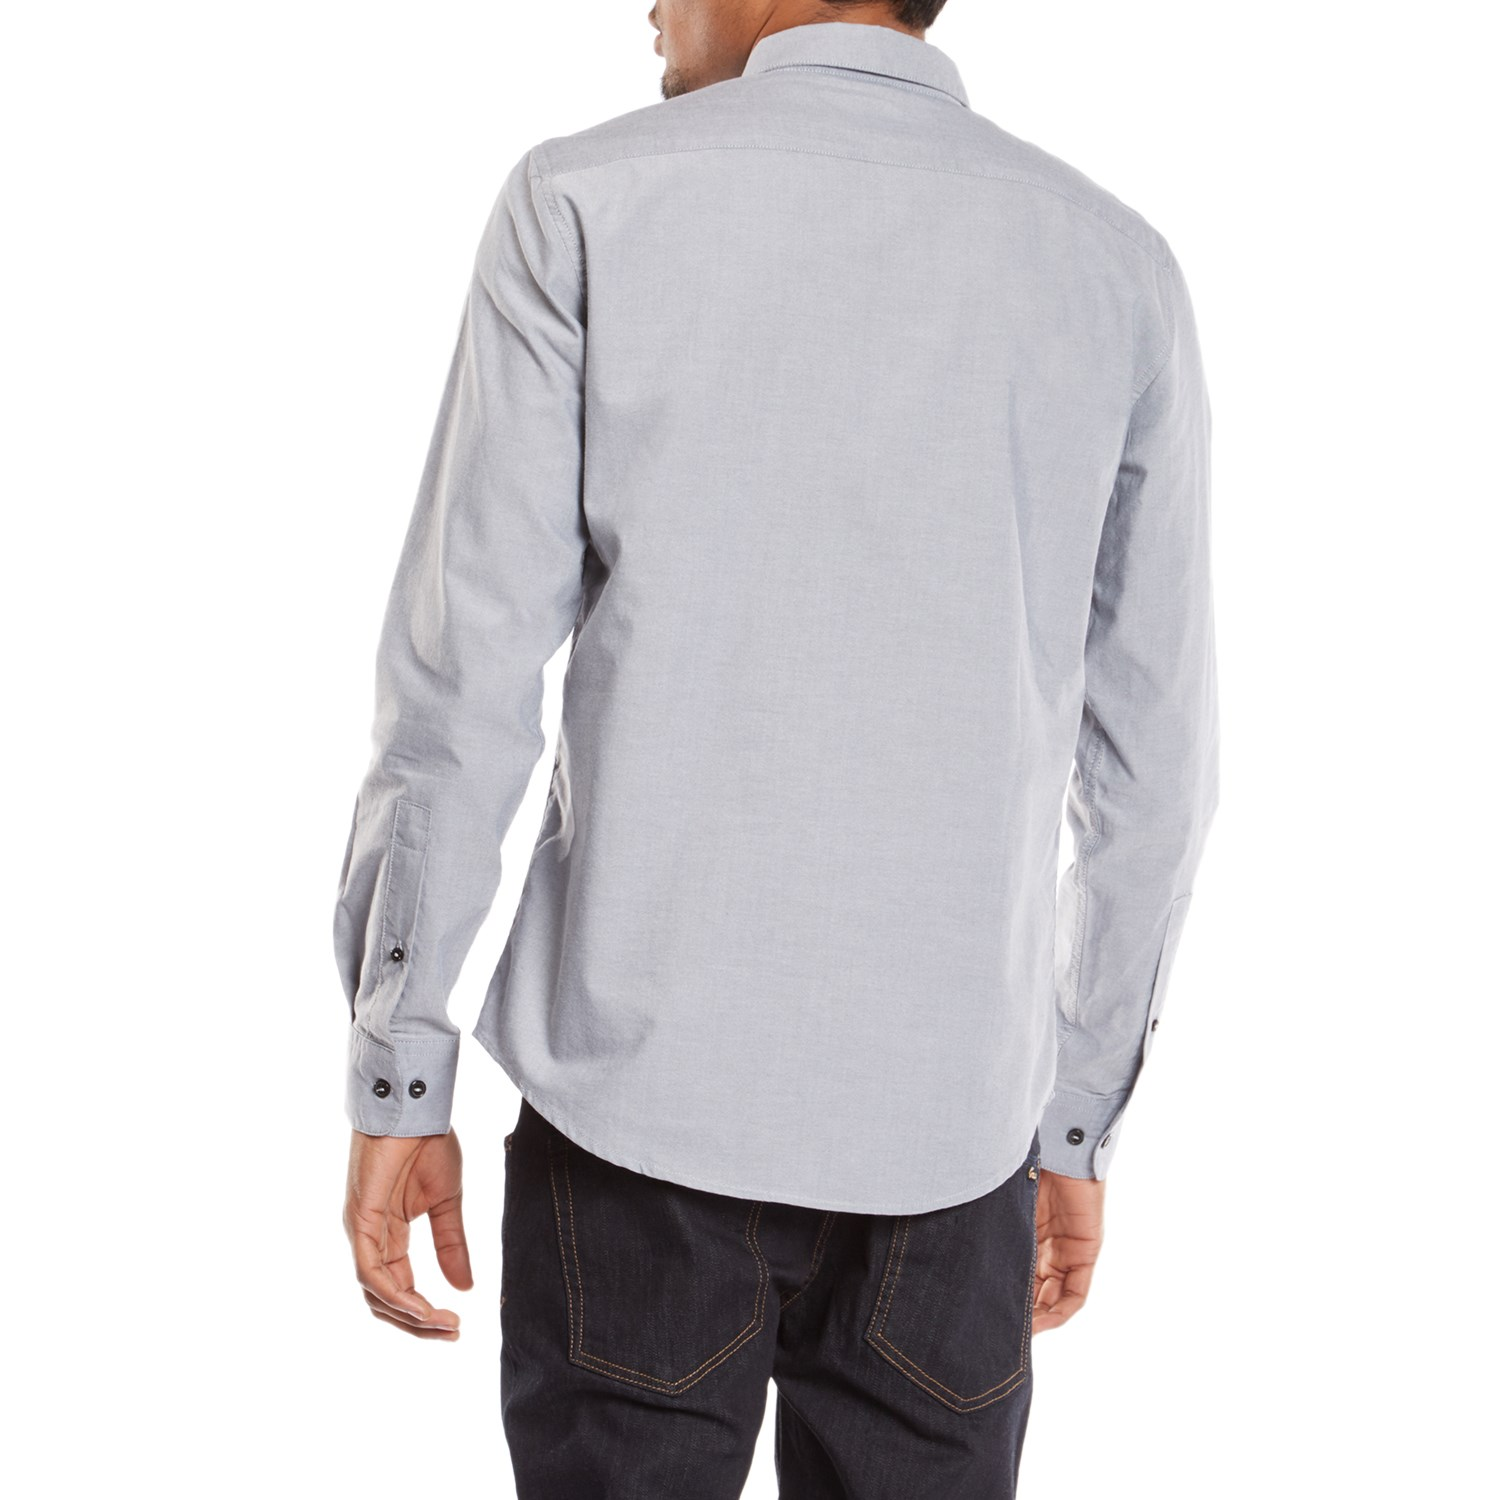 RVCA That'll Do Oxford Long-Sleeve Button-Down Shirt | evo